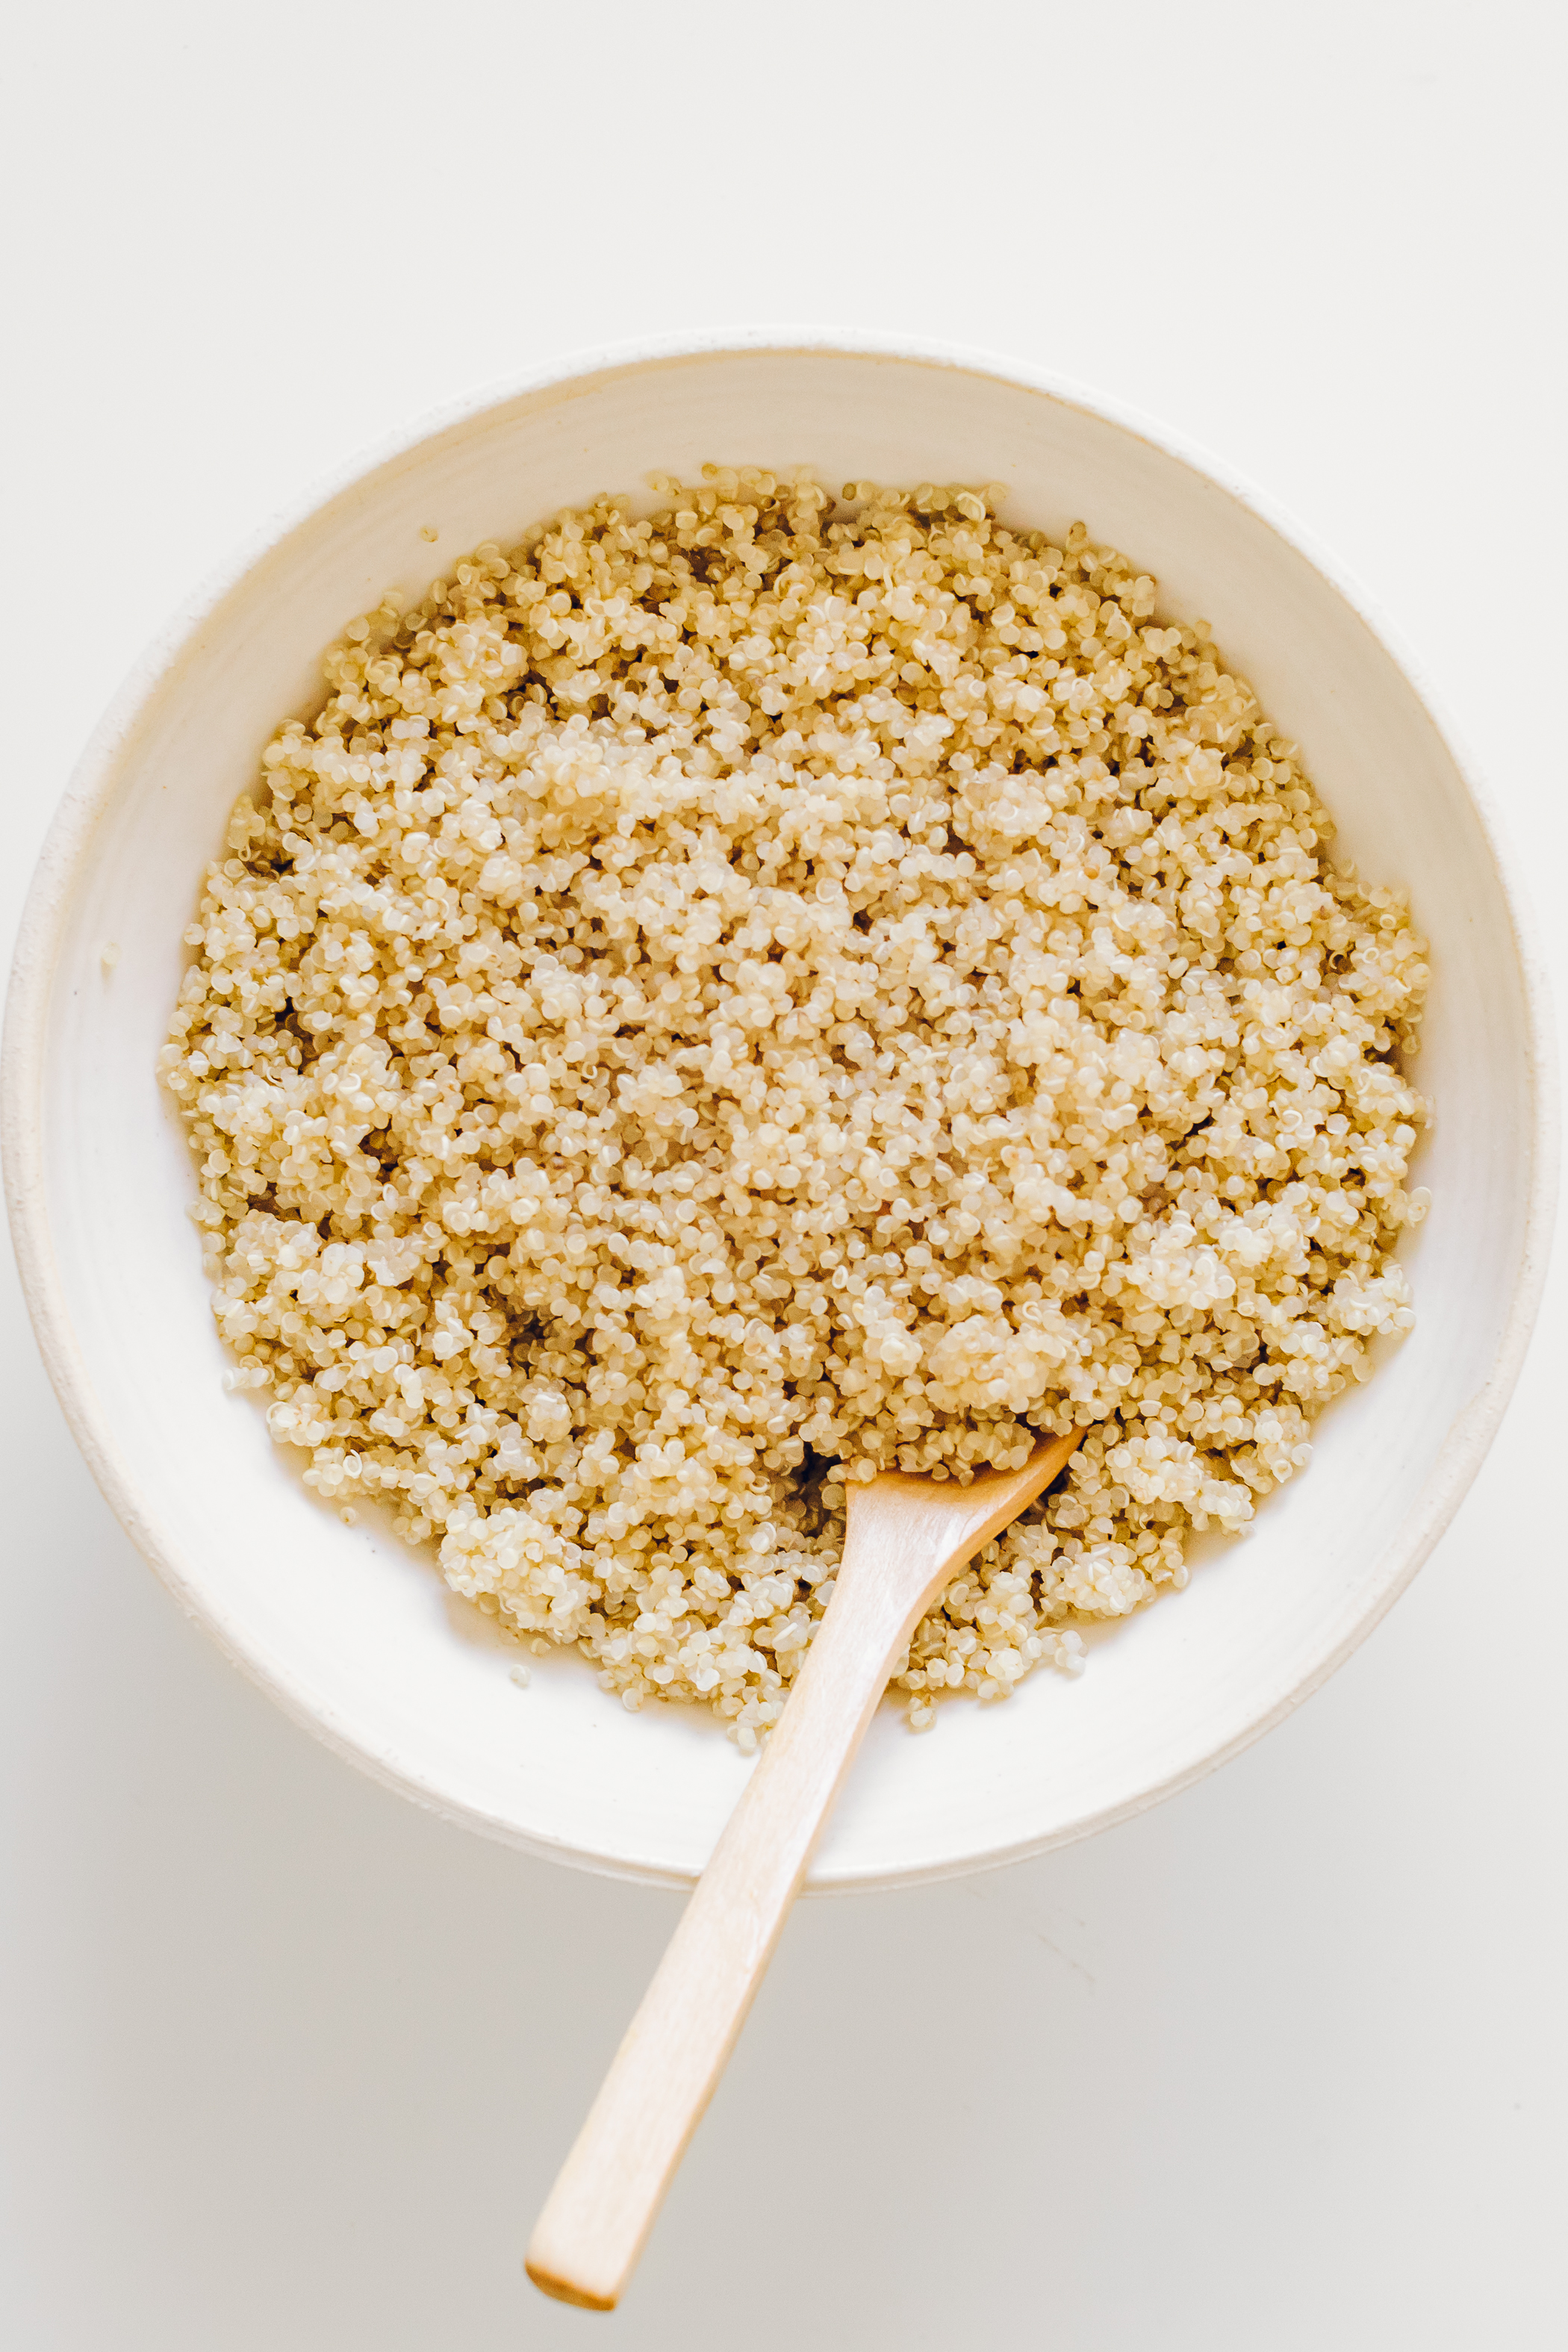 Quinoa - 1. Cover 1 cup of quinoa in a bowl with a few cups of water and a teaspoon of apple cider vinegar. Let soak for 12 hours.2. Rinse quinoa well, and place in a pot with 1 cup of fresh water.3. Bring to a boil, reduce to a low simmer, cover, and let cook until all of the water is absorbed. Usually between 15 to 18 minutes.4. When you lift the lid an inch and no longer hear any water sizzling, place the lid back on the pot and set aside to steam for at least15 minutes.5. Fluff with a fork, serve, and store cooled leftovers in an airtight container in the fridge. Enjoy within one week.Quinoa to water ratio for cooking is 1:1